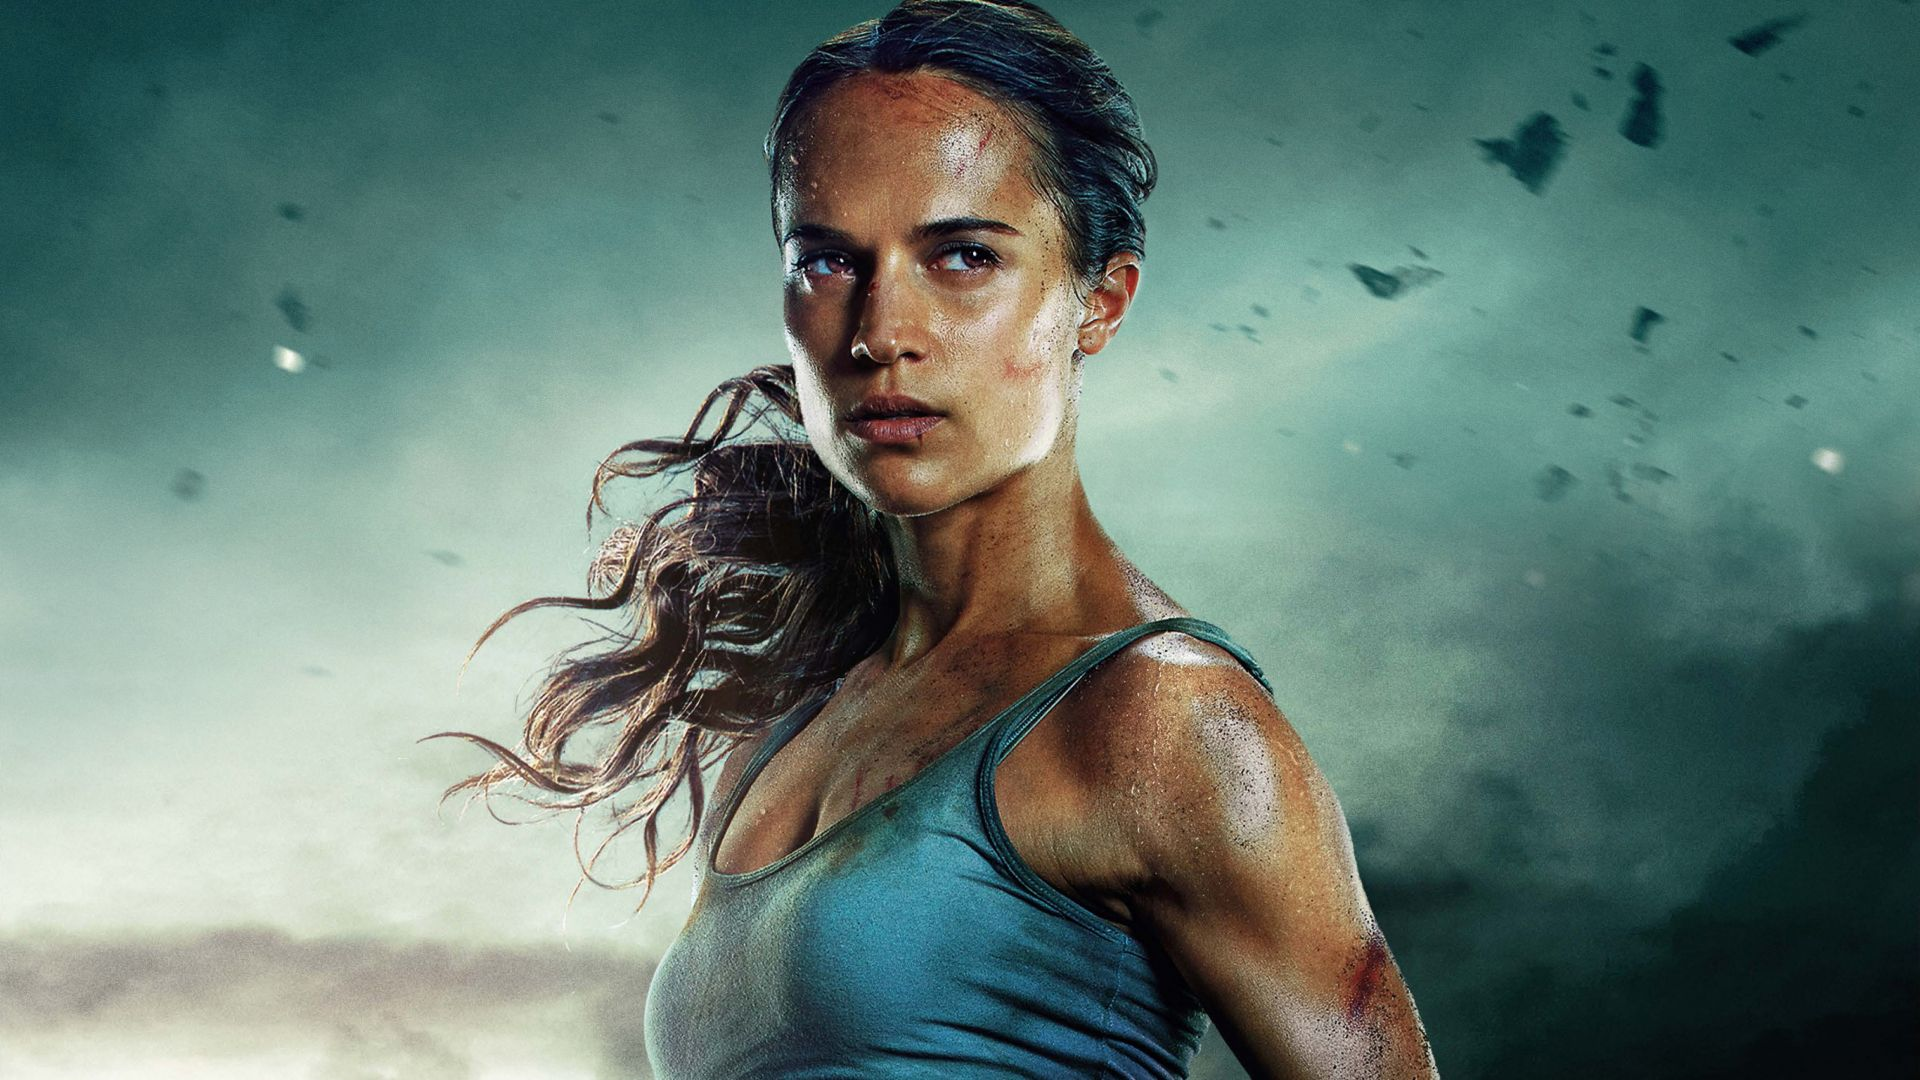 Лара Крофт, Lara Croft, Tomb Raider, Alicia Vikander, 5k (horizontal)